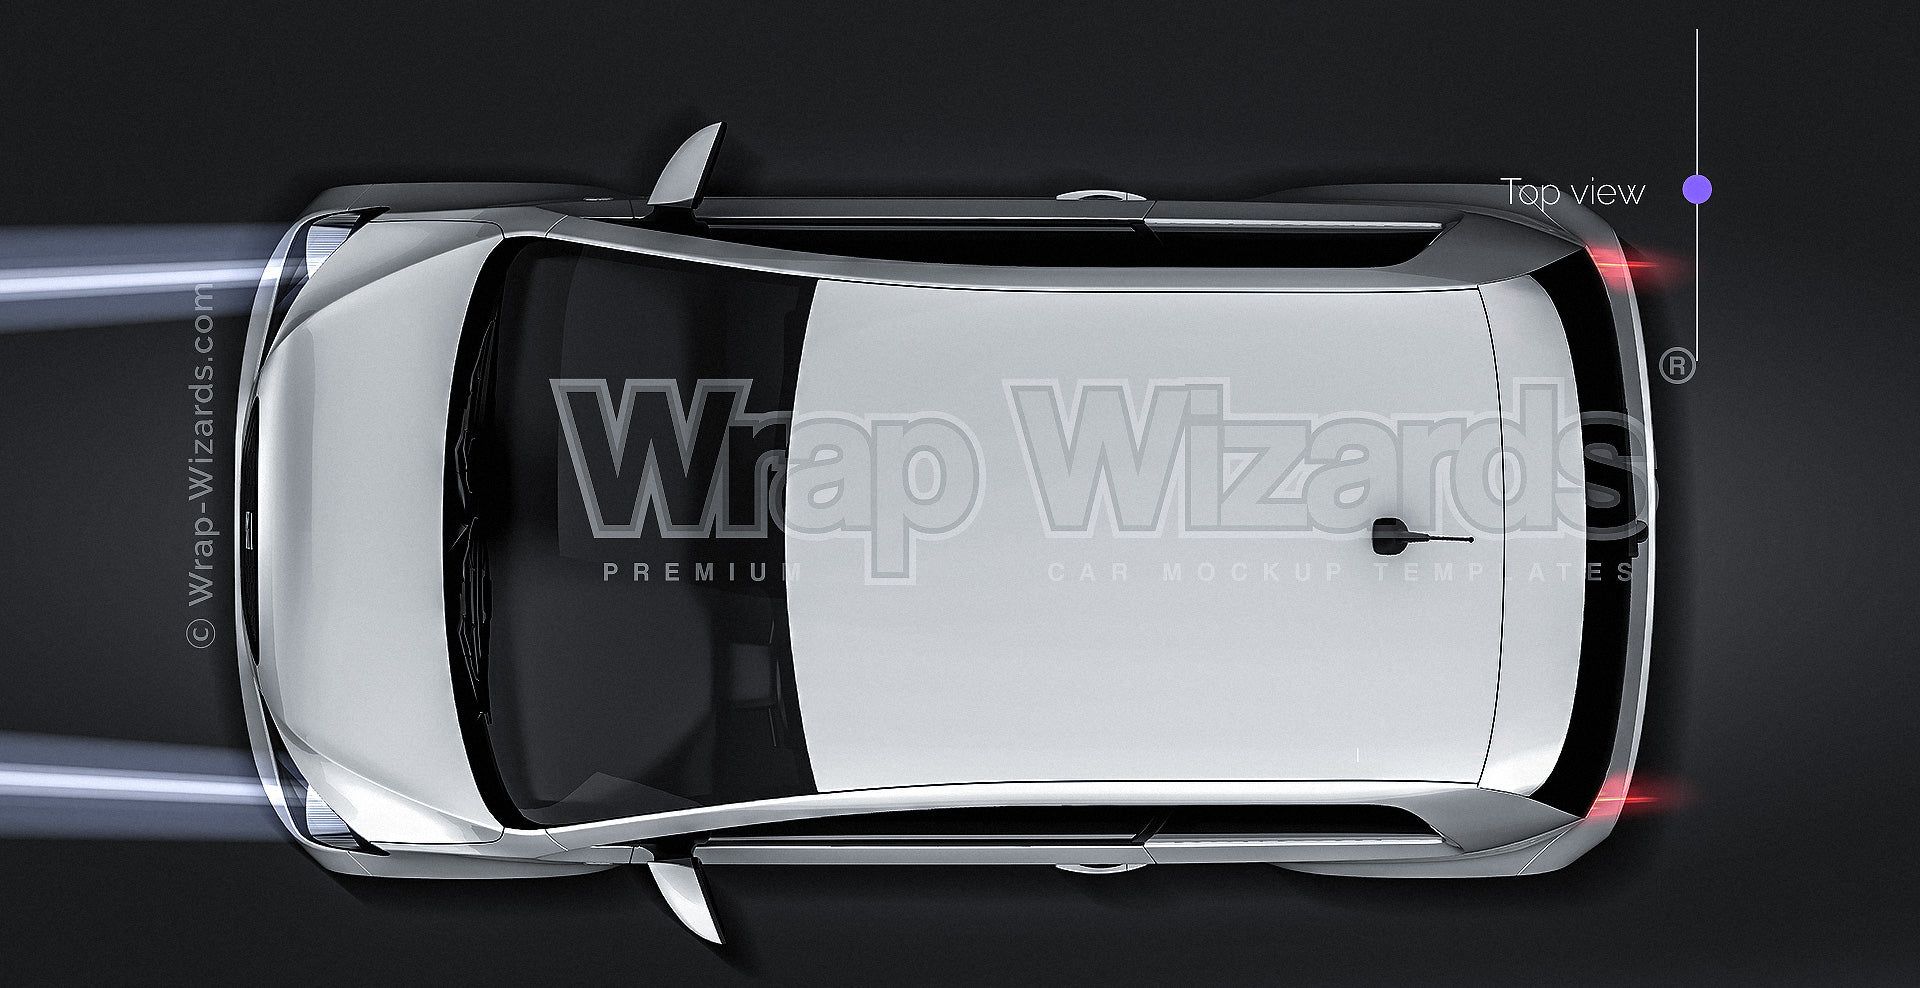 Seat MII 2012 glossy finish - all sides Car Mockup Template.psd